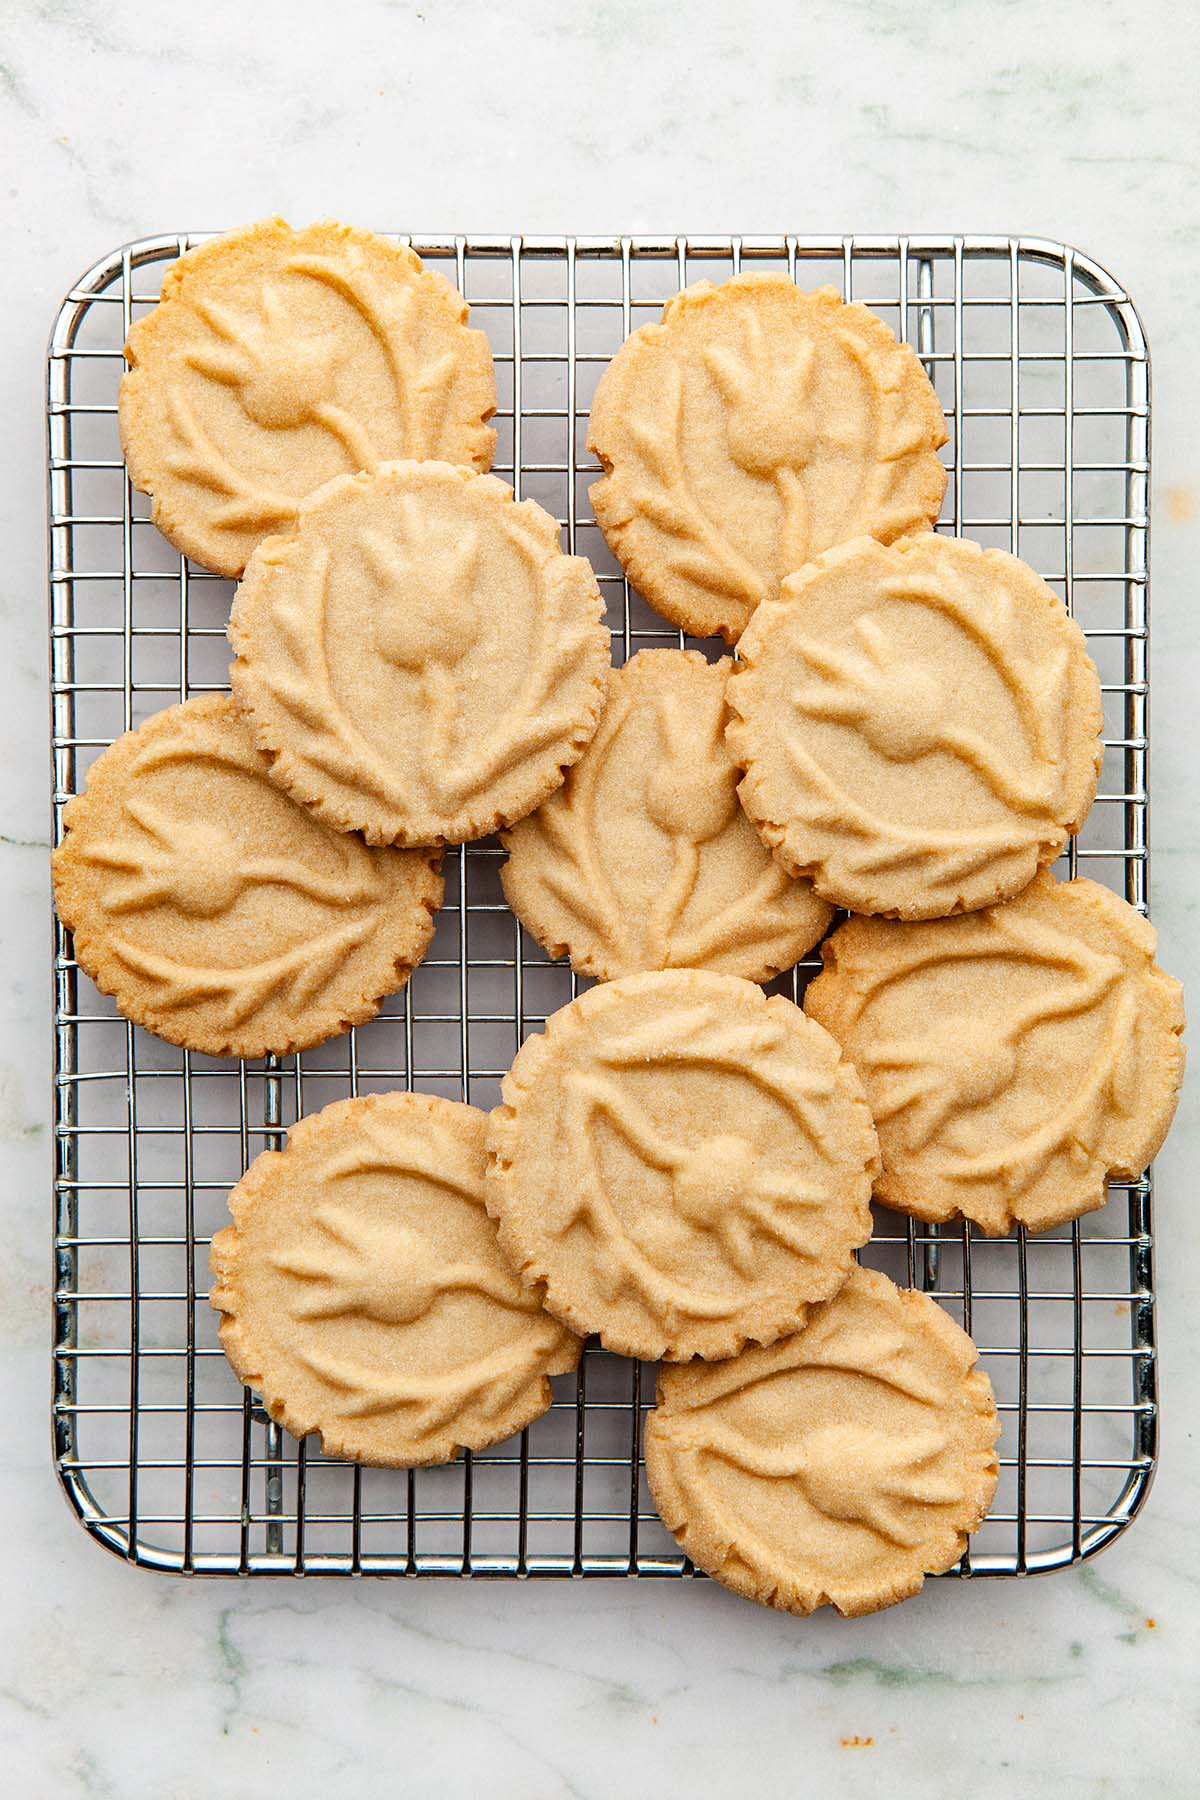 Stamped shortbread cookies on a wire cooling rack.